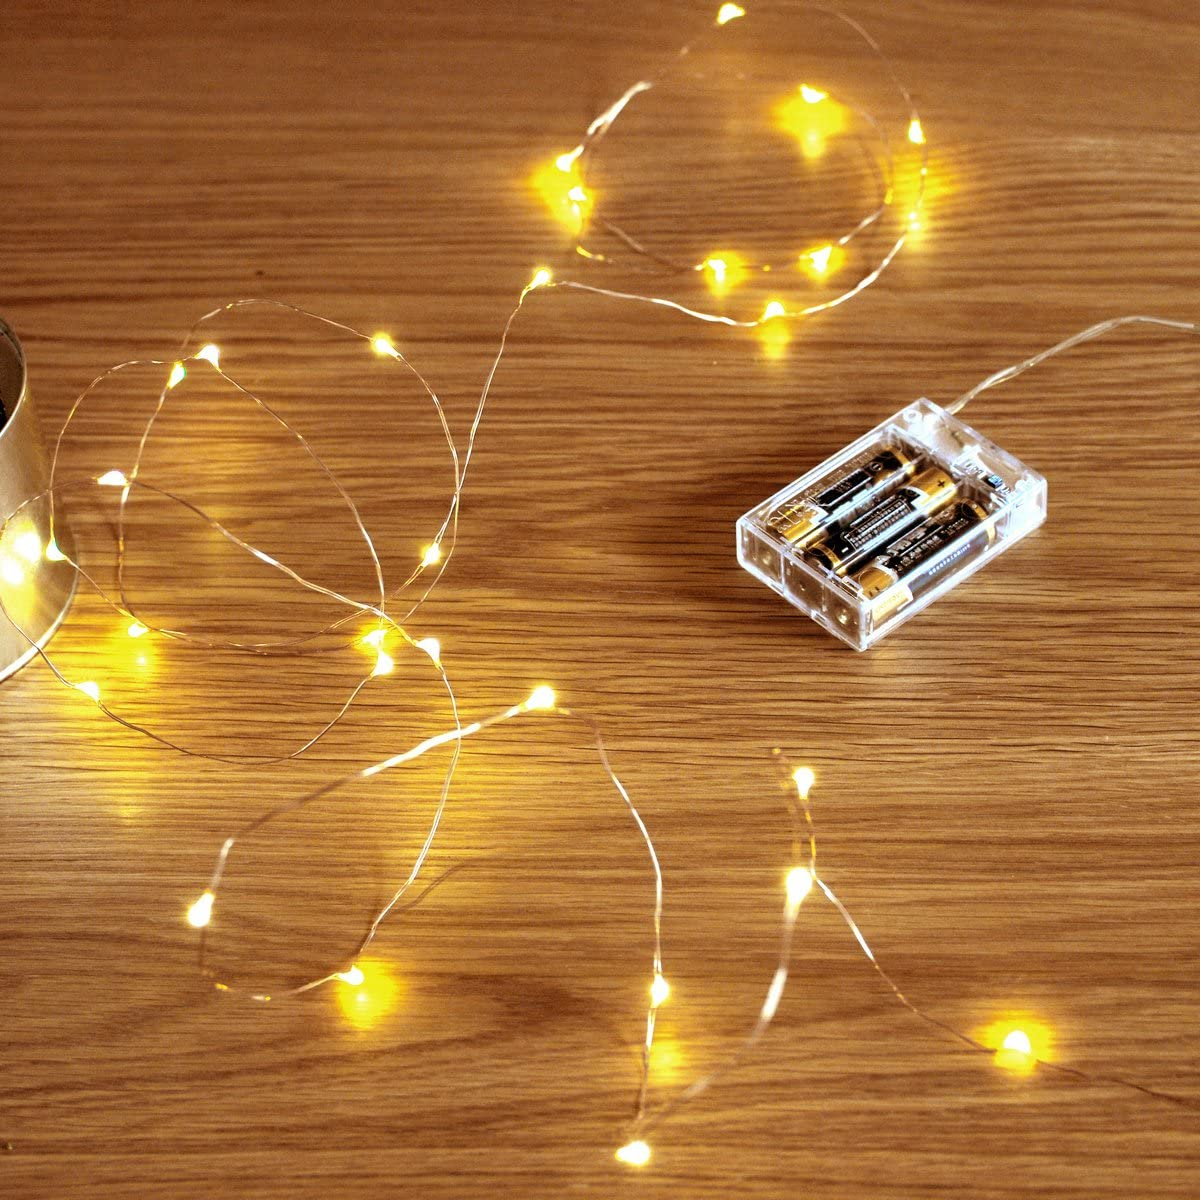 Amazon Com Led String Lights Sanniu Mini Battery Powered Copper Wire Starry Fairy Lights Battery Operated Lights For Bedroom Christmas Parties Wedding Centerpiece Decoration 5m 16ft Warm White Home Improvement